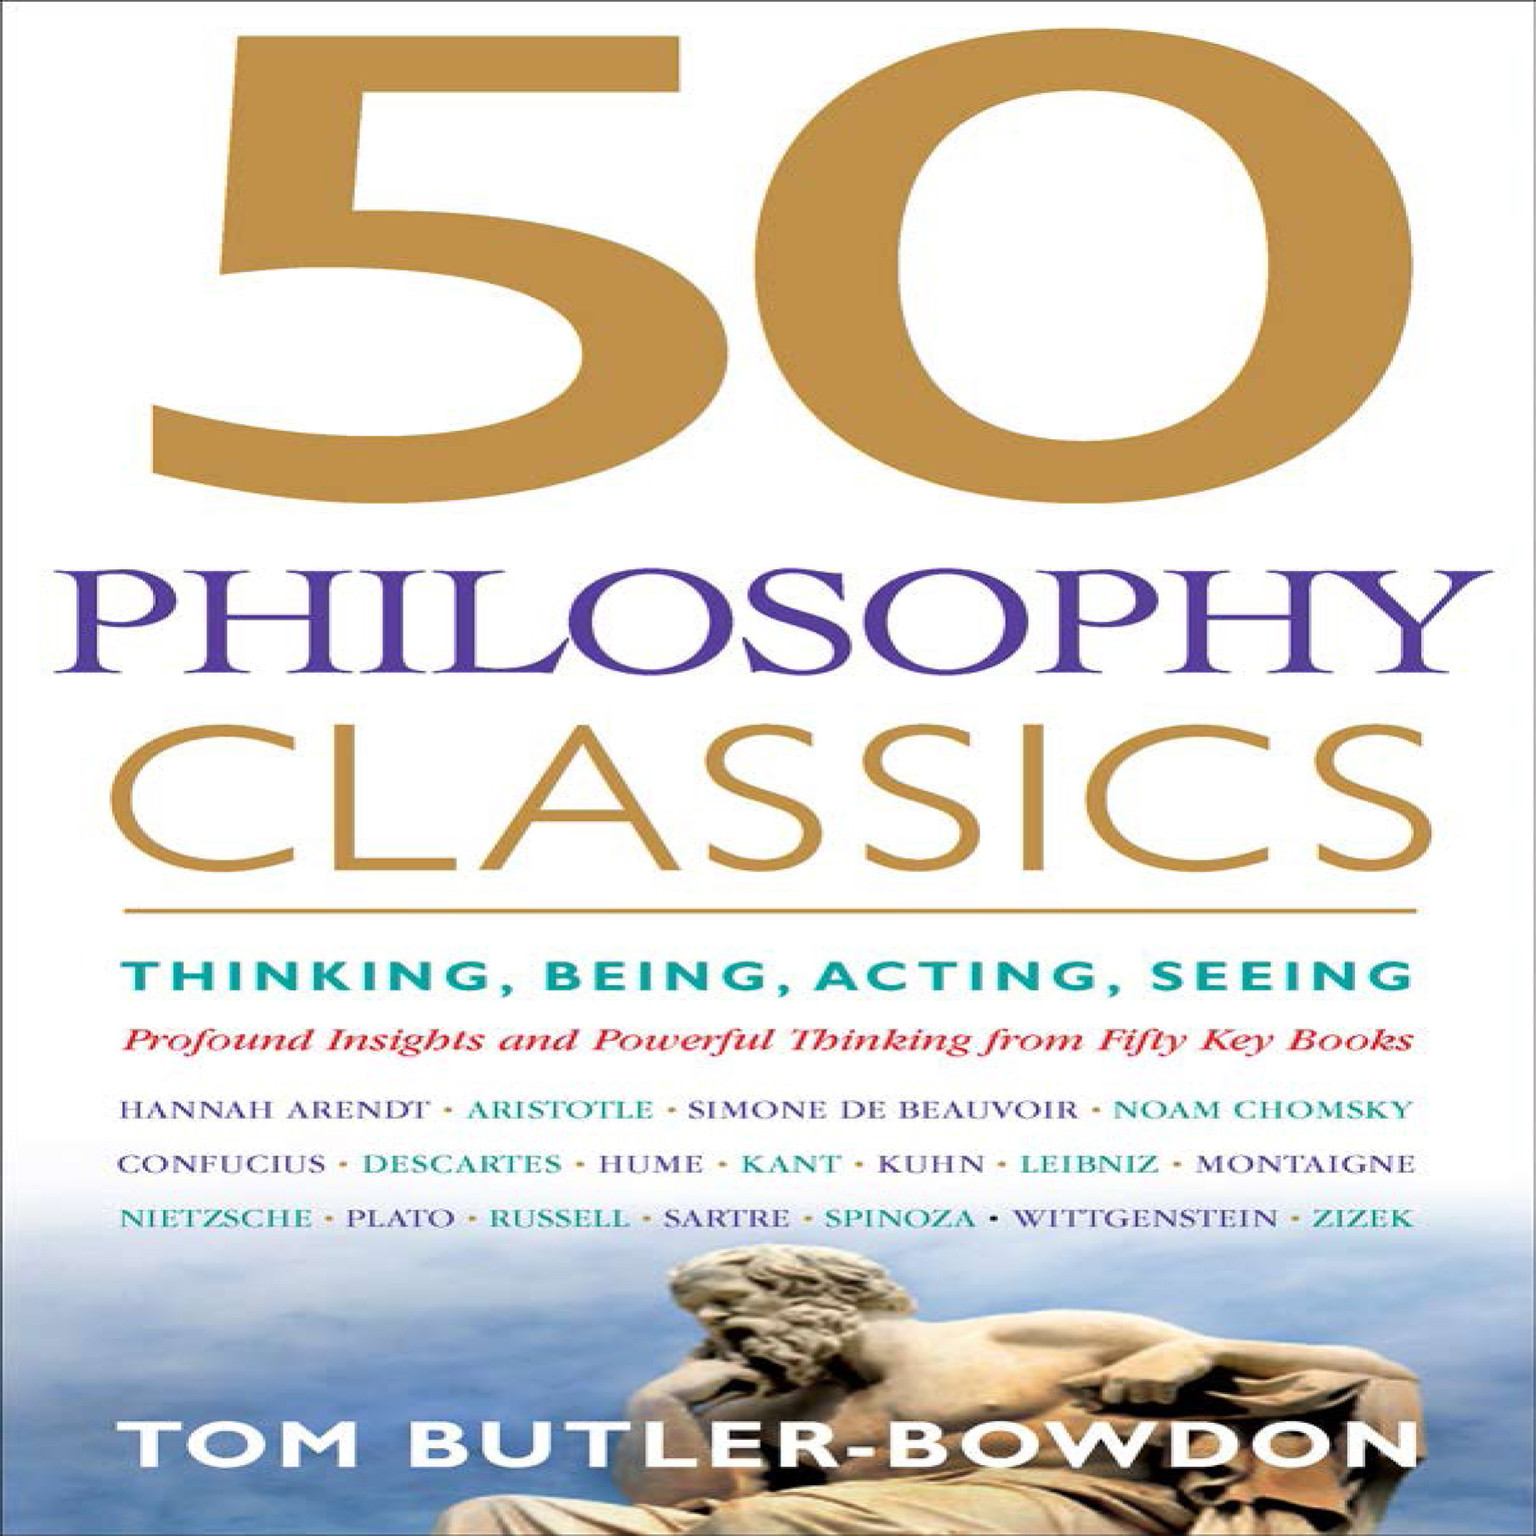 Printable 50 Philosophy Classics: Thinking, Being, Acting, Seeing, Profound Insights and Powerful Thinking from Fifty Key Books Audiobook Cover Art